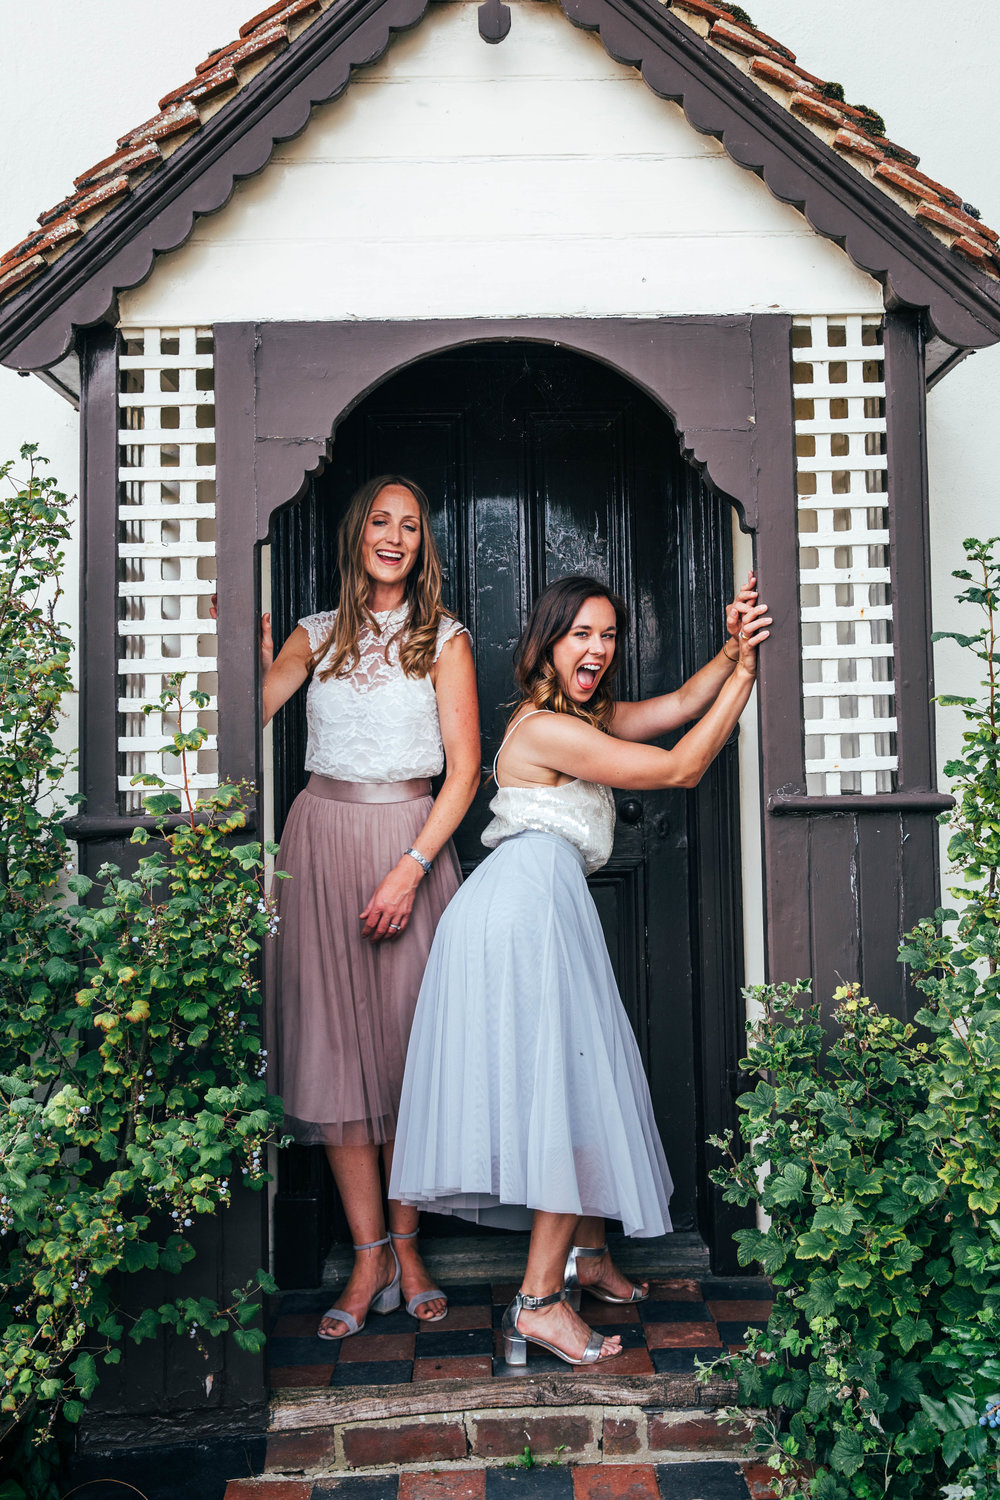 Laughing wedding guests in doorway for DIY Boho wedding. Essex Documentary Wedding Photographer